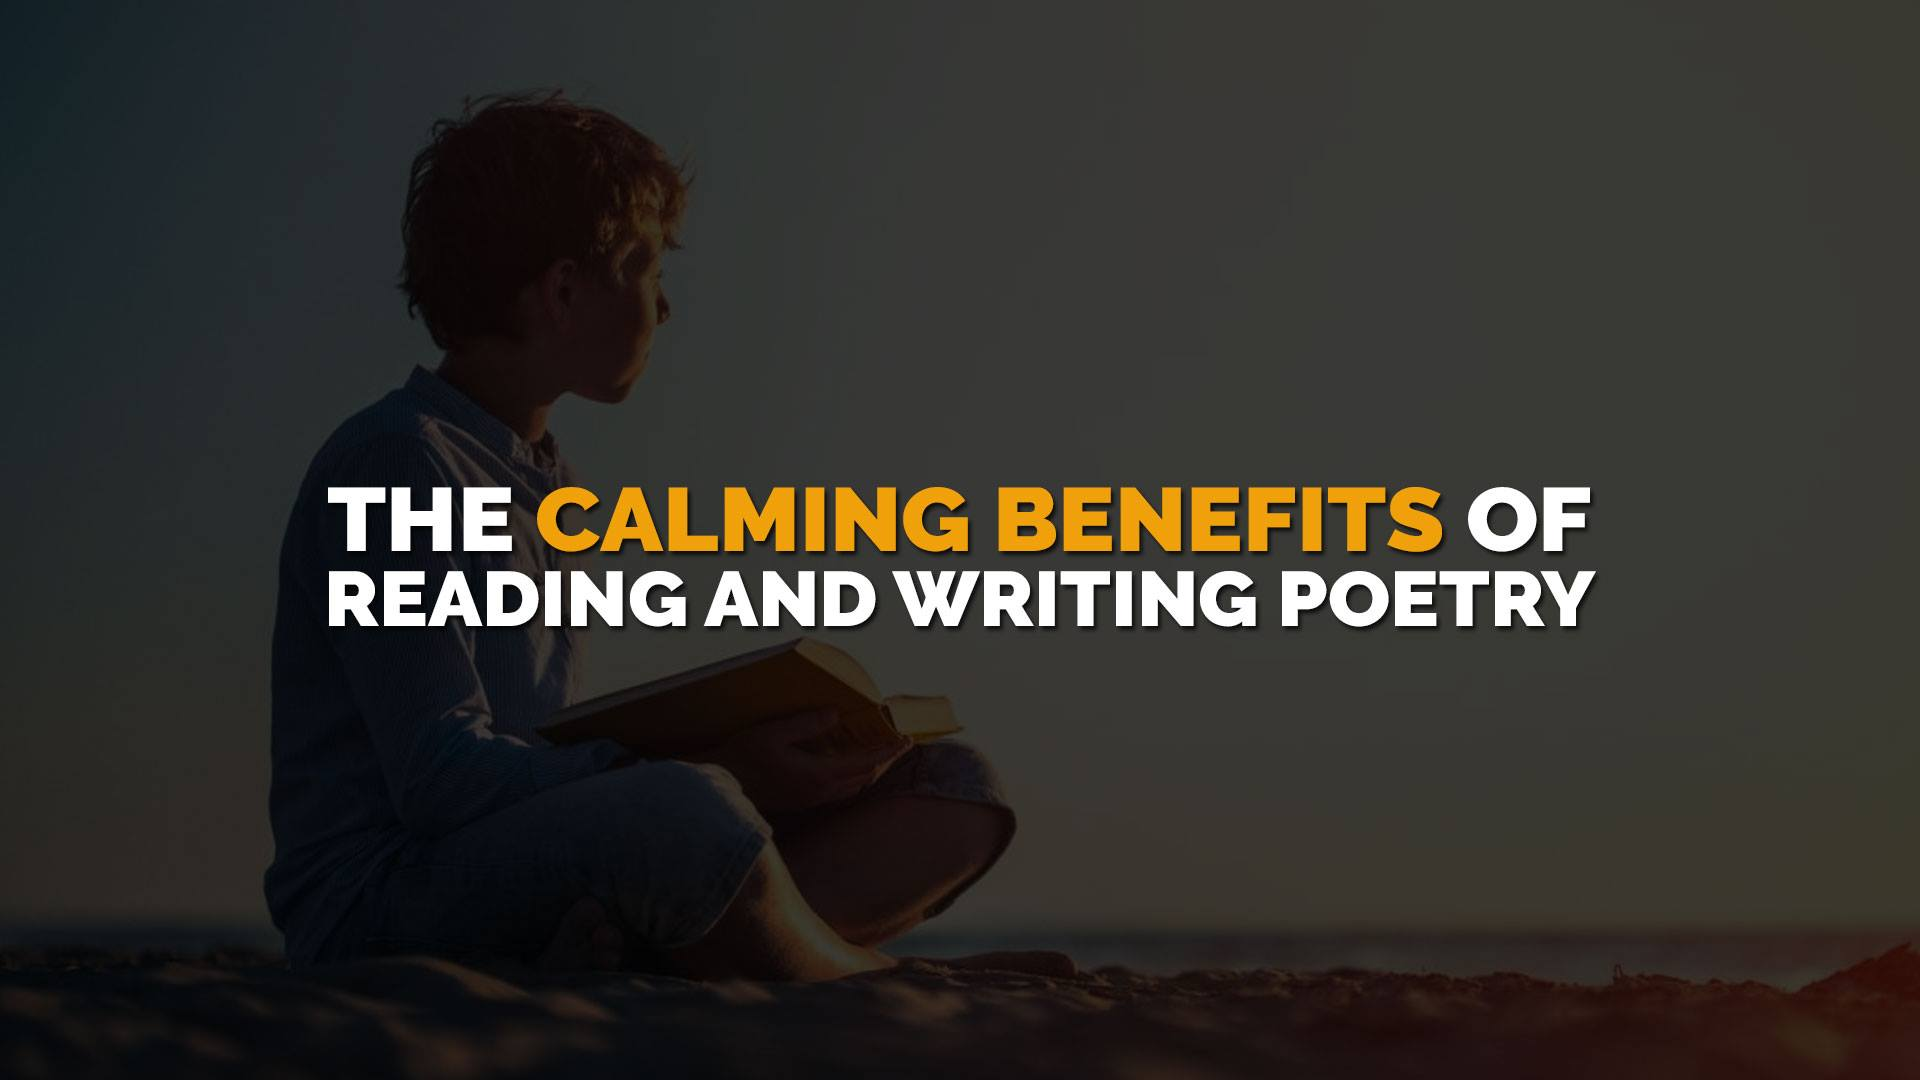 The Calming Benefits of Reading and Writing Poetry